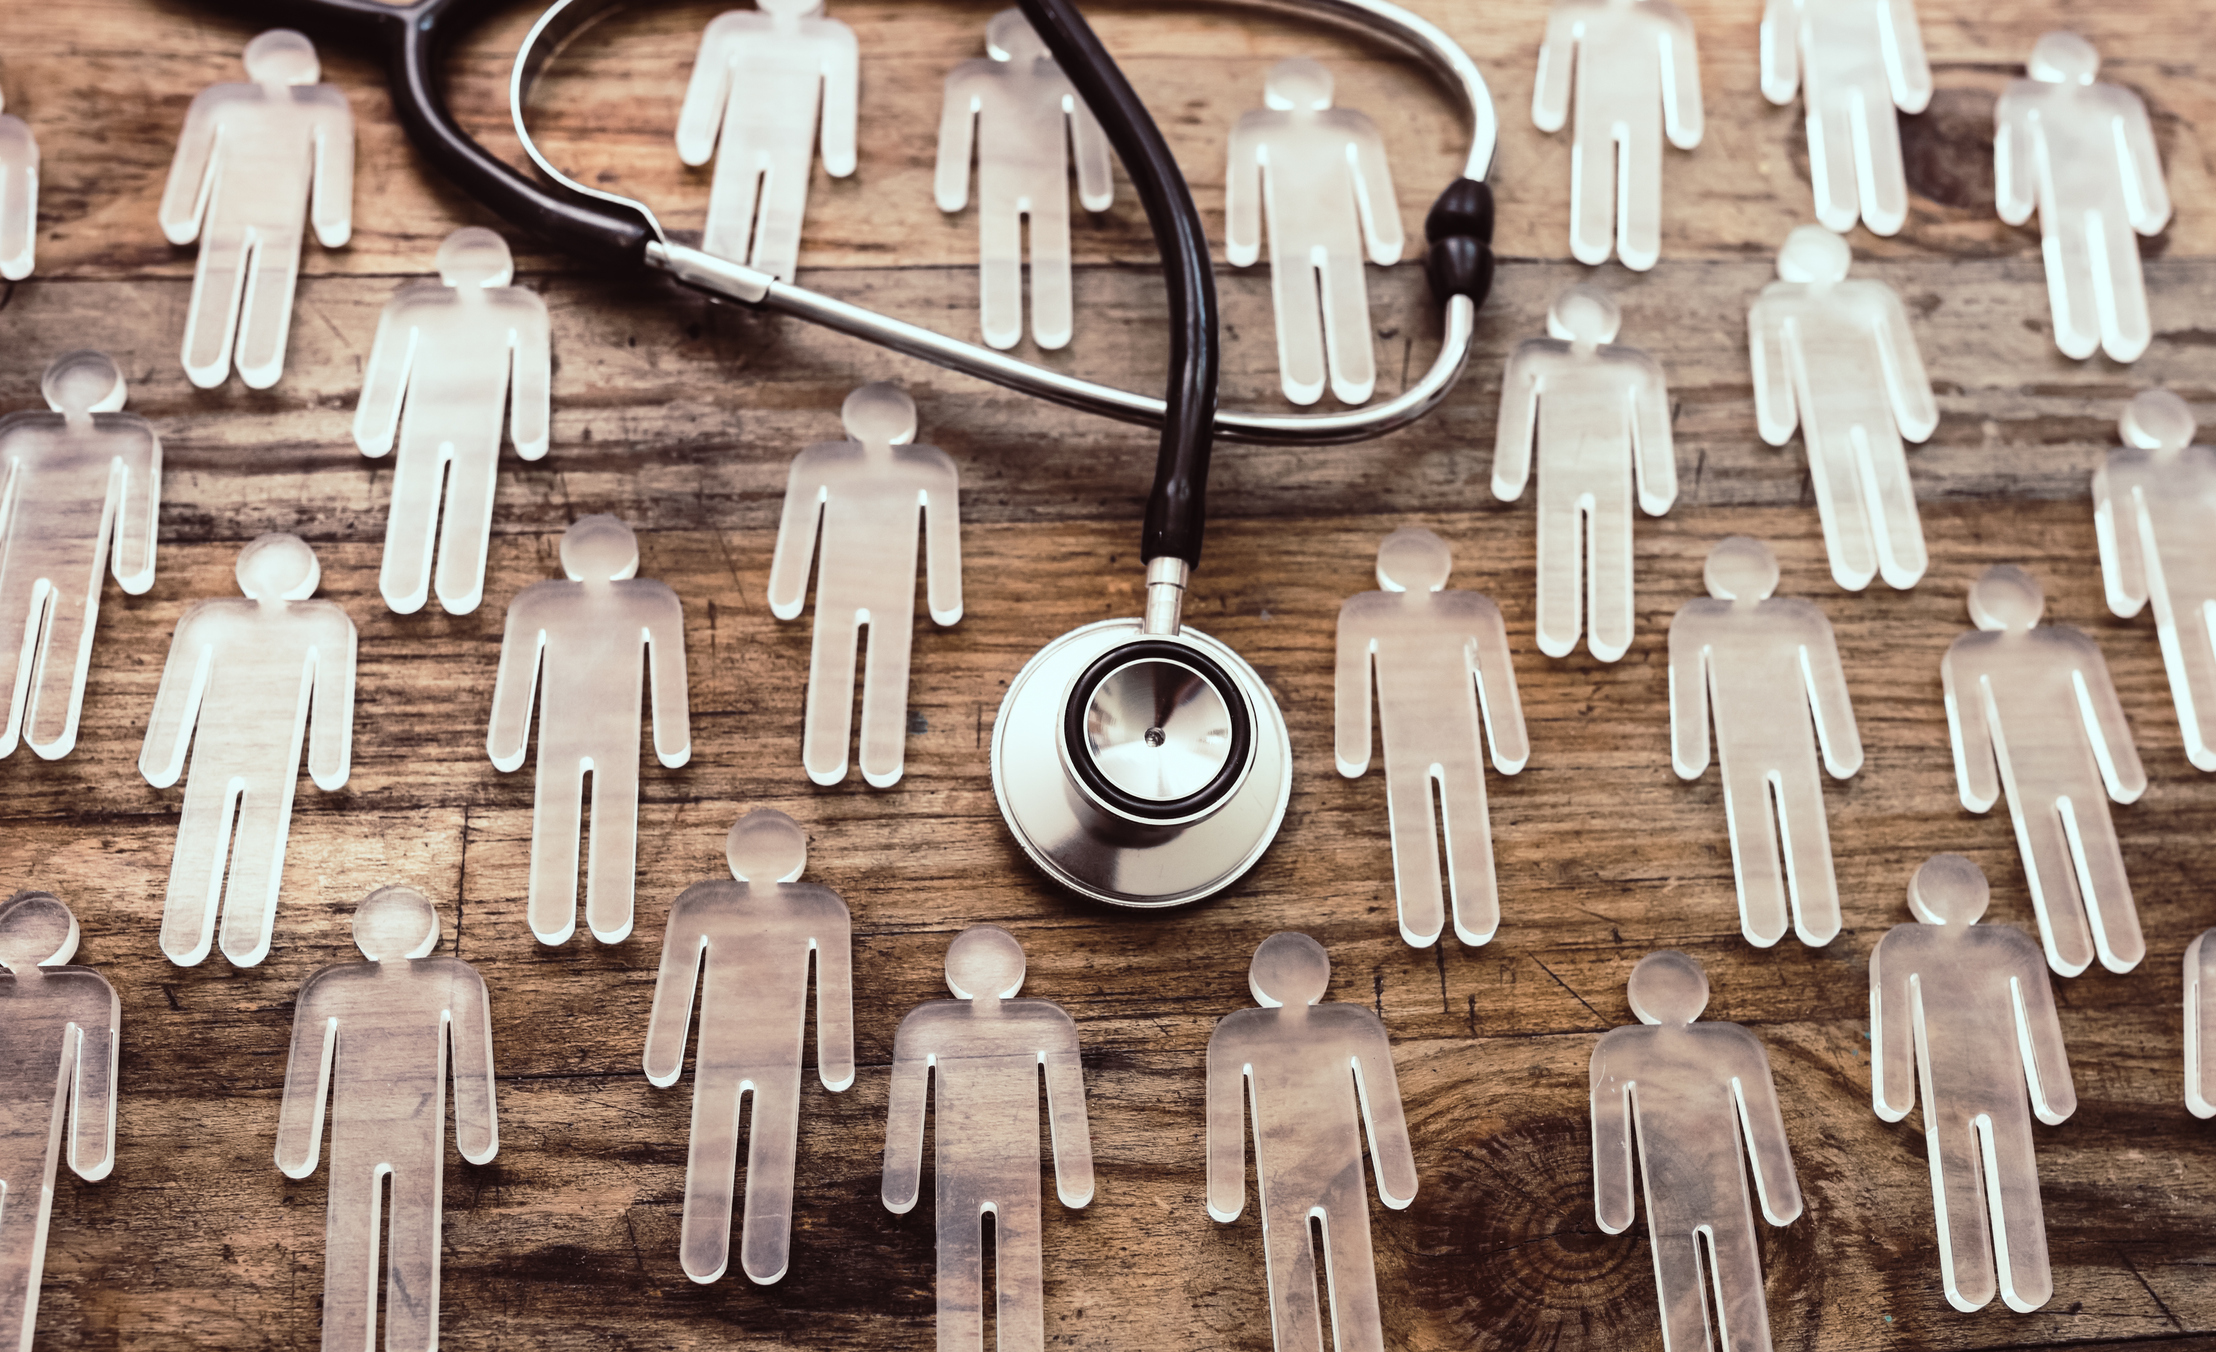 Patient Cutouts with Stethoscope